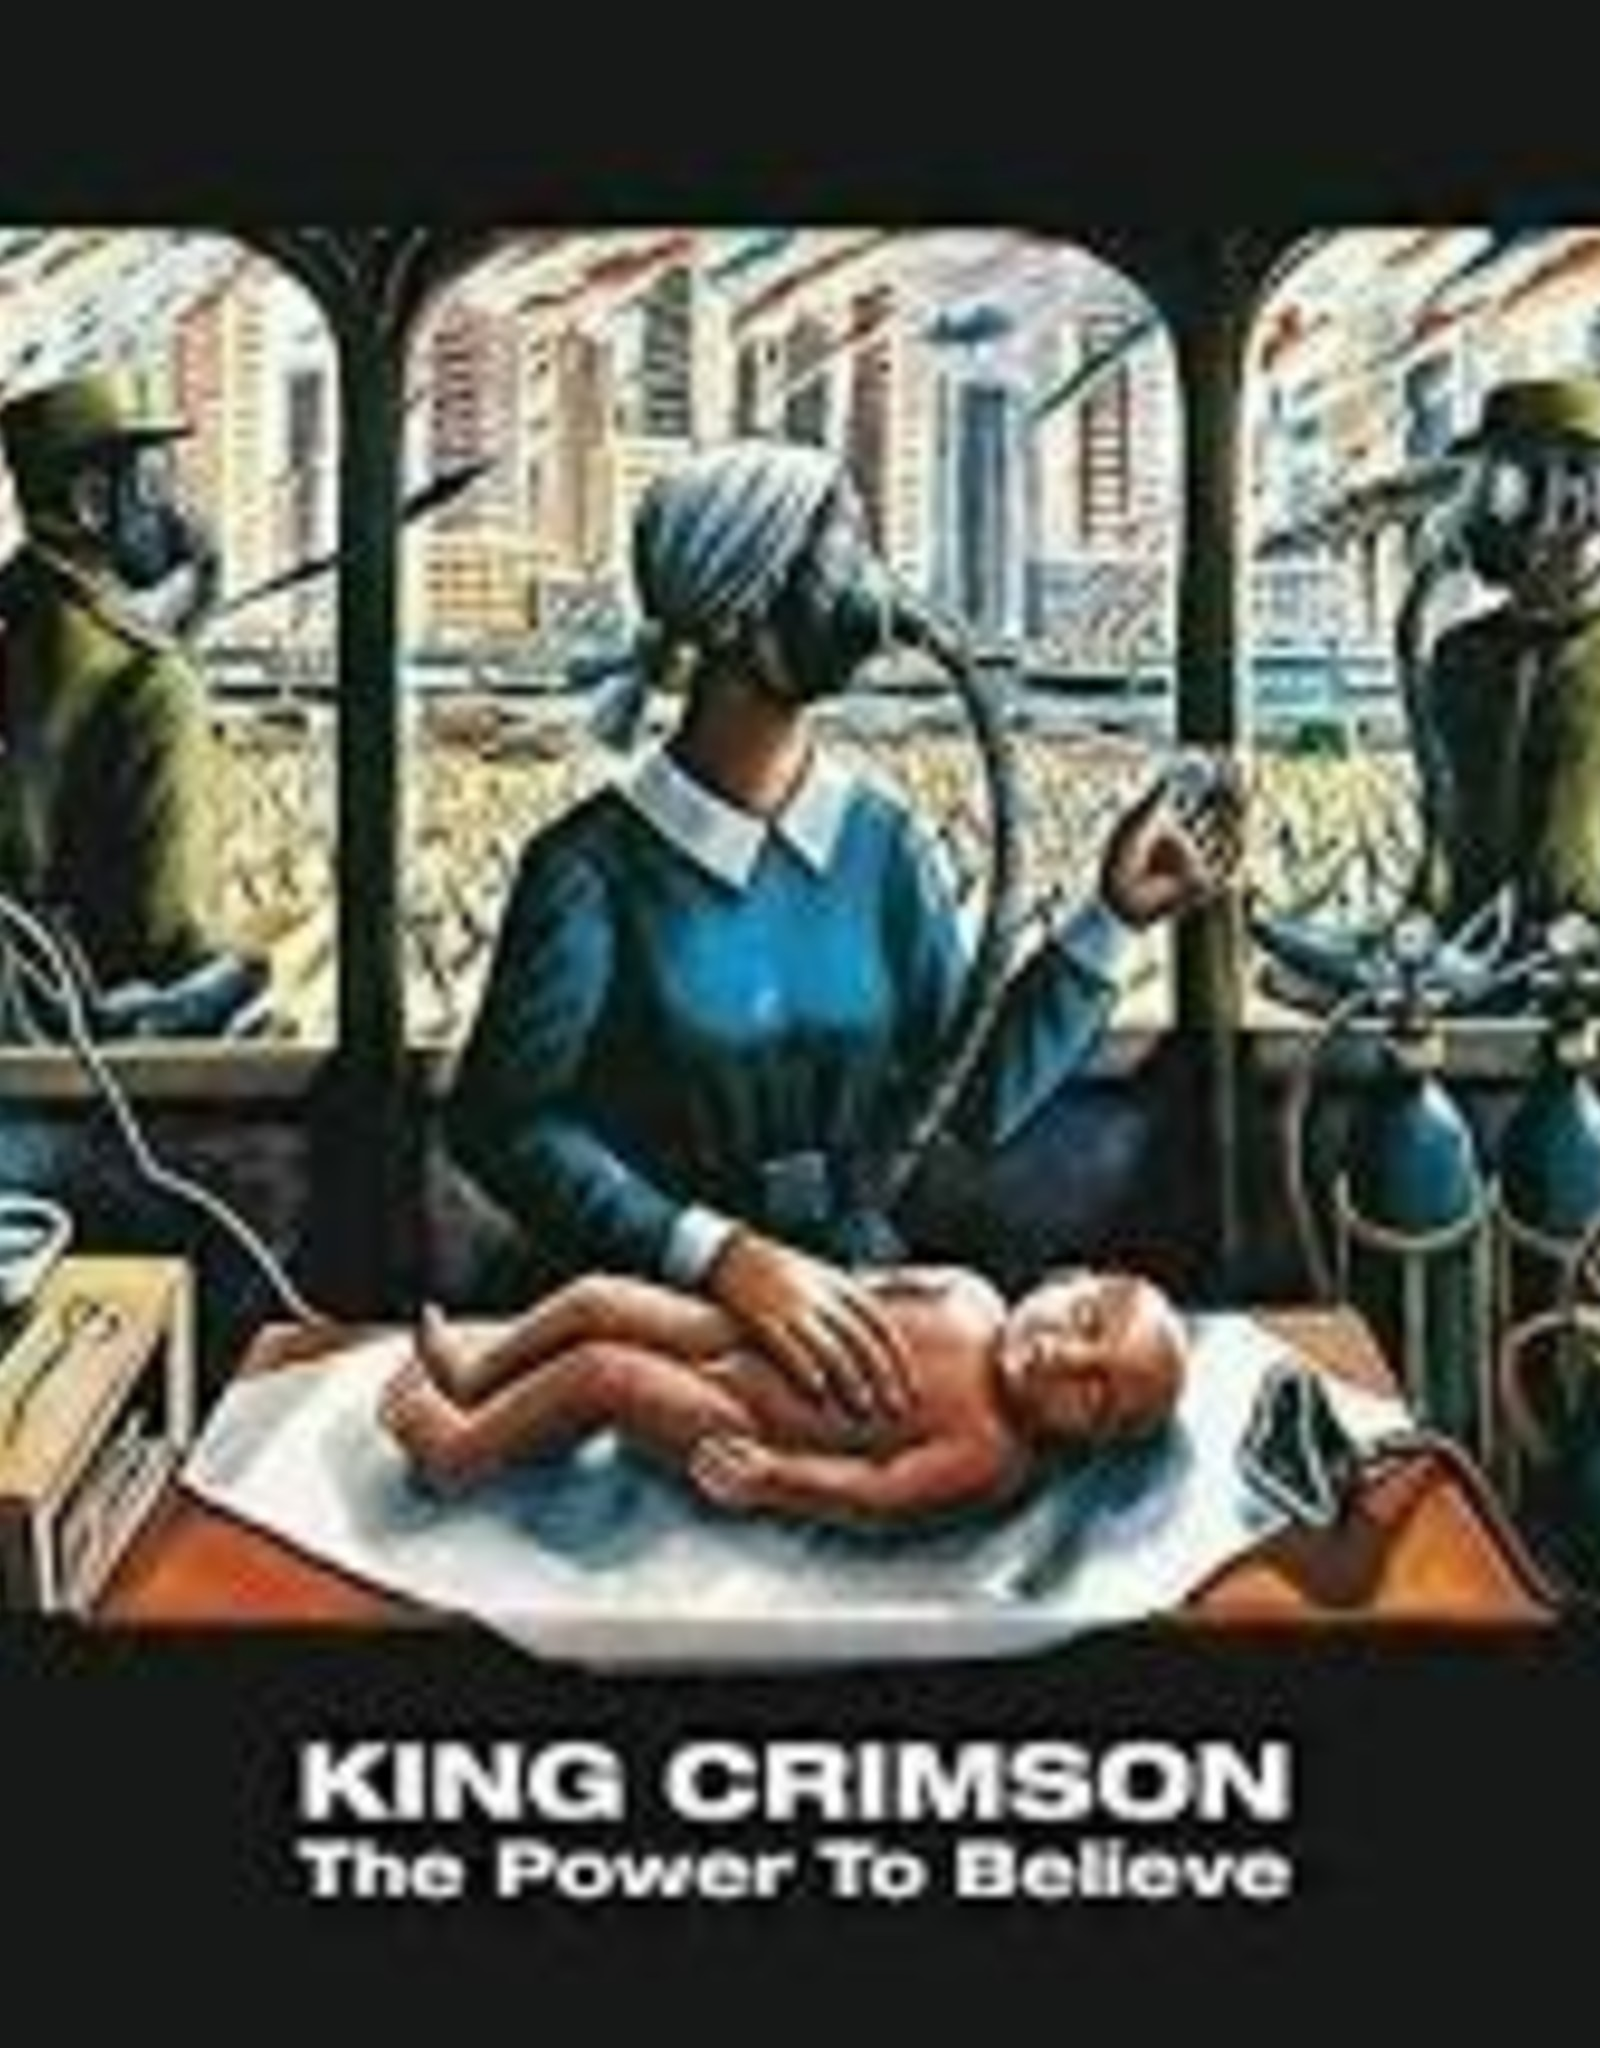 King Crimson - Power To Believe (200gm Vinyl)